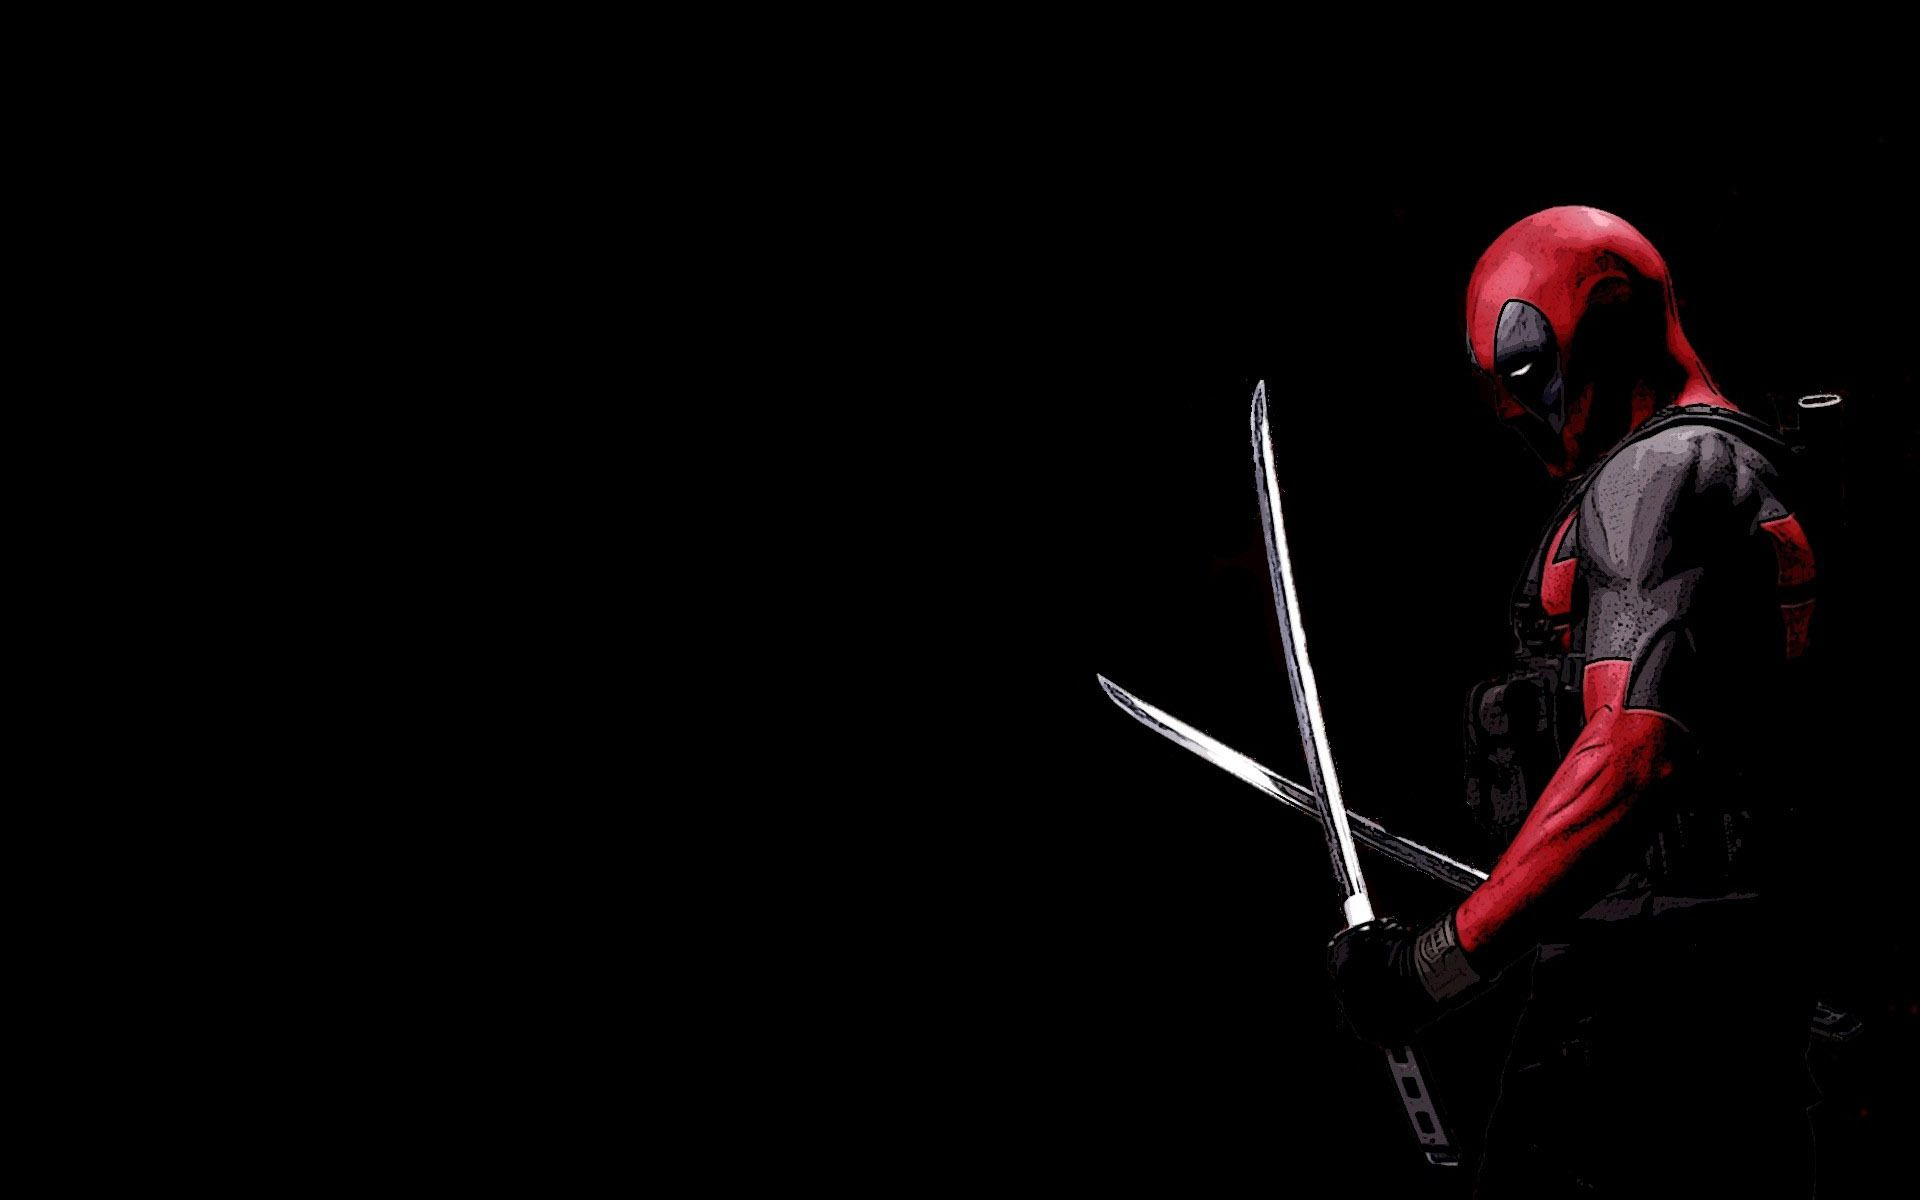 wade-wilson-deadpool-wallpapers